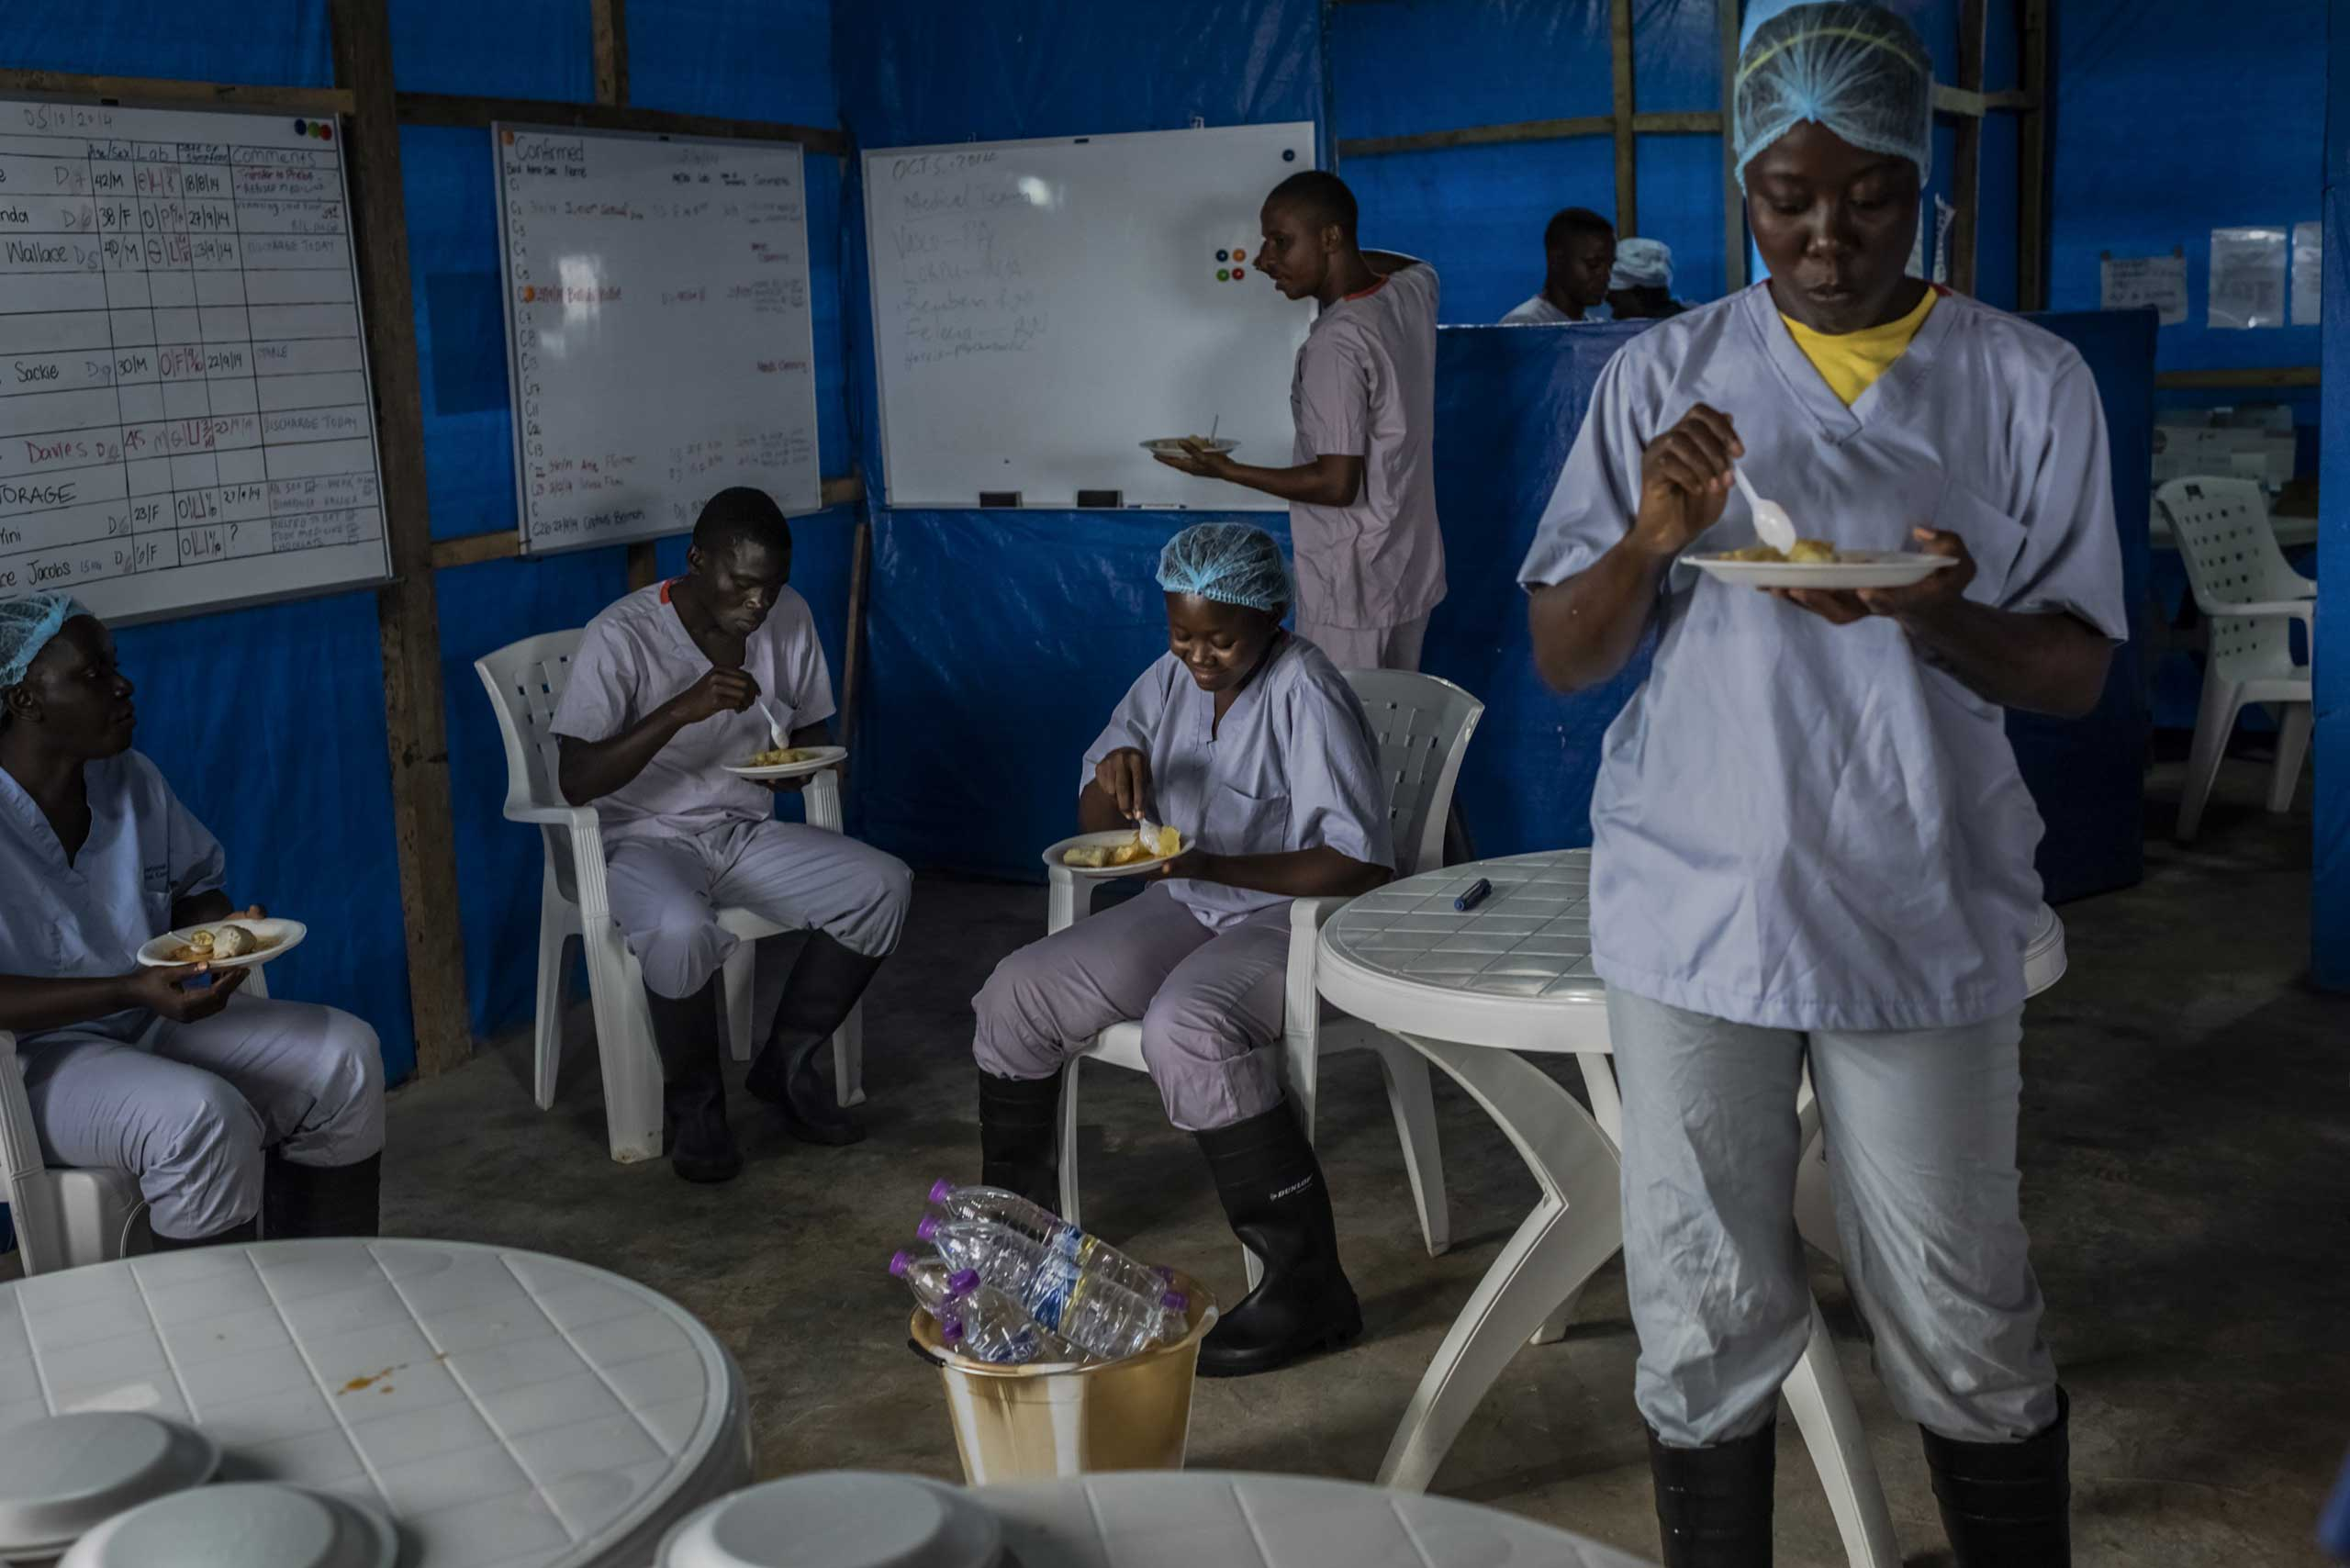 Oct. 5, 2014. Health workers eat breakfast at the Bong County Ebola Treatment Unit near Gbarnga in rural Bong County, Liberia. The food is prepared off site, at a university that is closed because of the Ebola outbreak and houses many of the staff members.